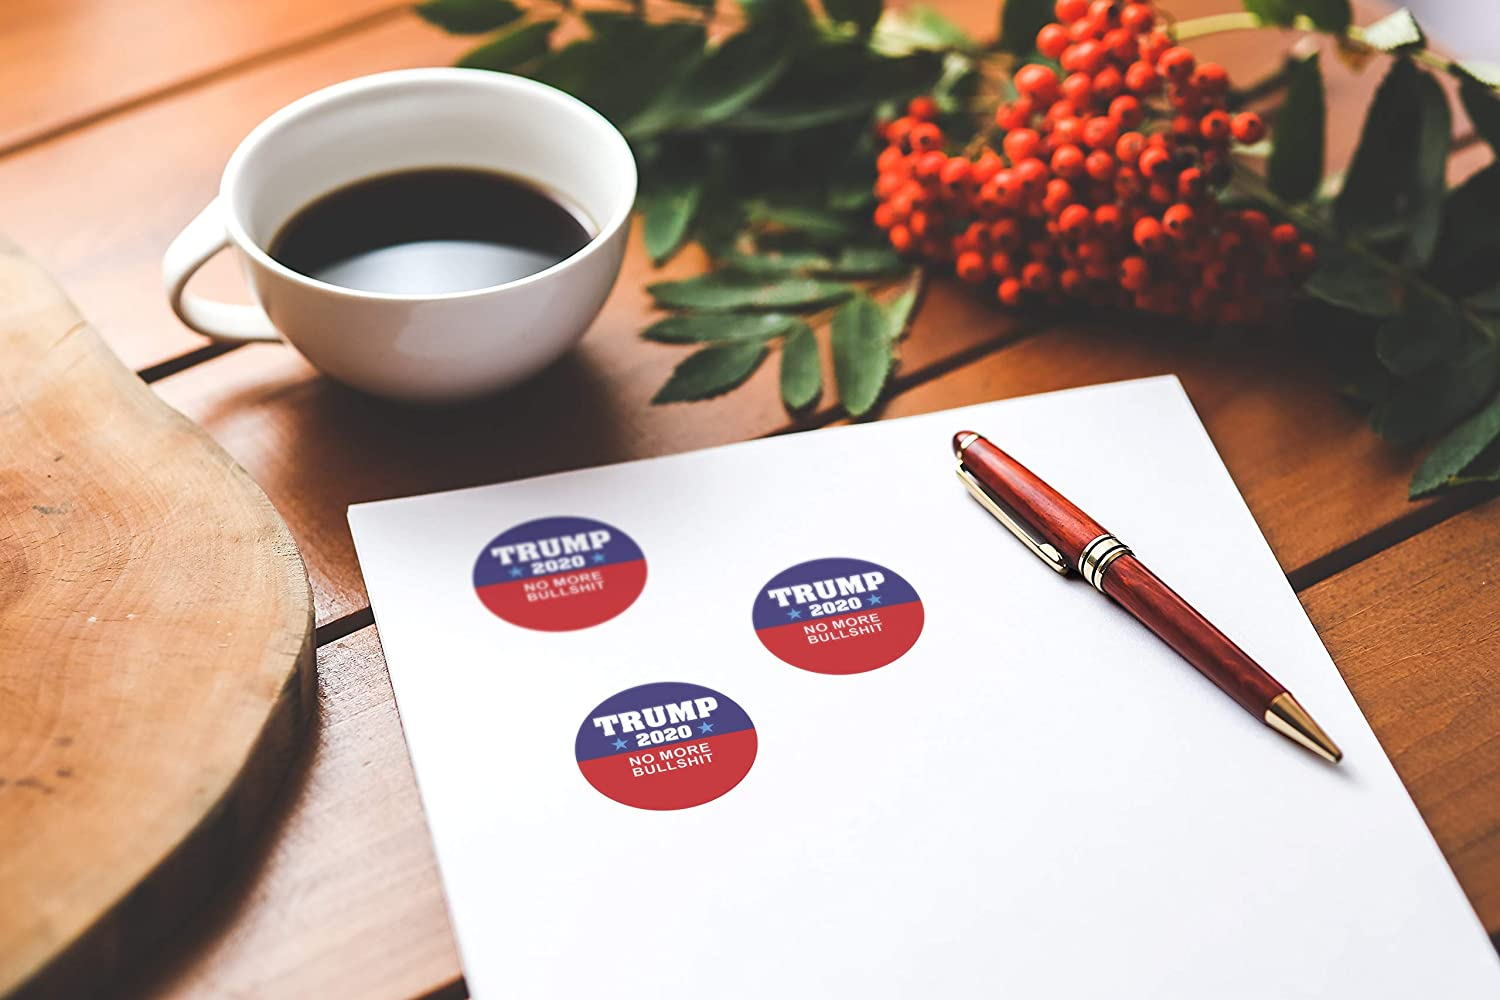 Trump 2020 Set of 16 Sticker Keep America Great Trump for President 2020 Decal United States Presidential Election